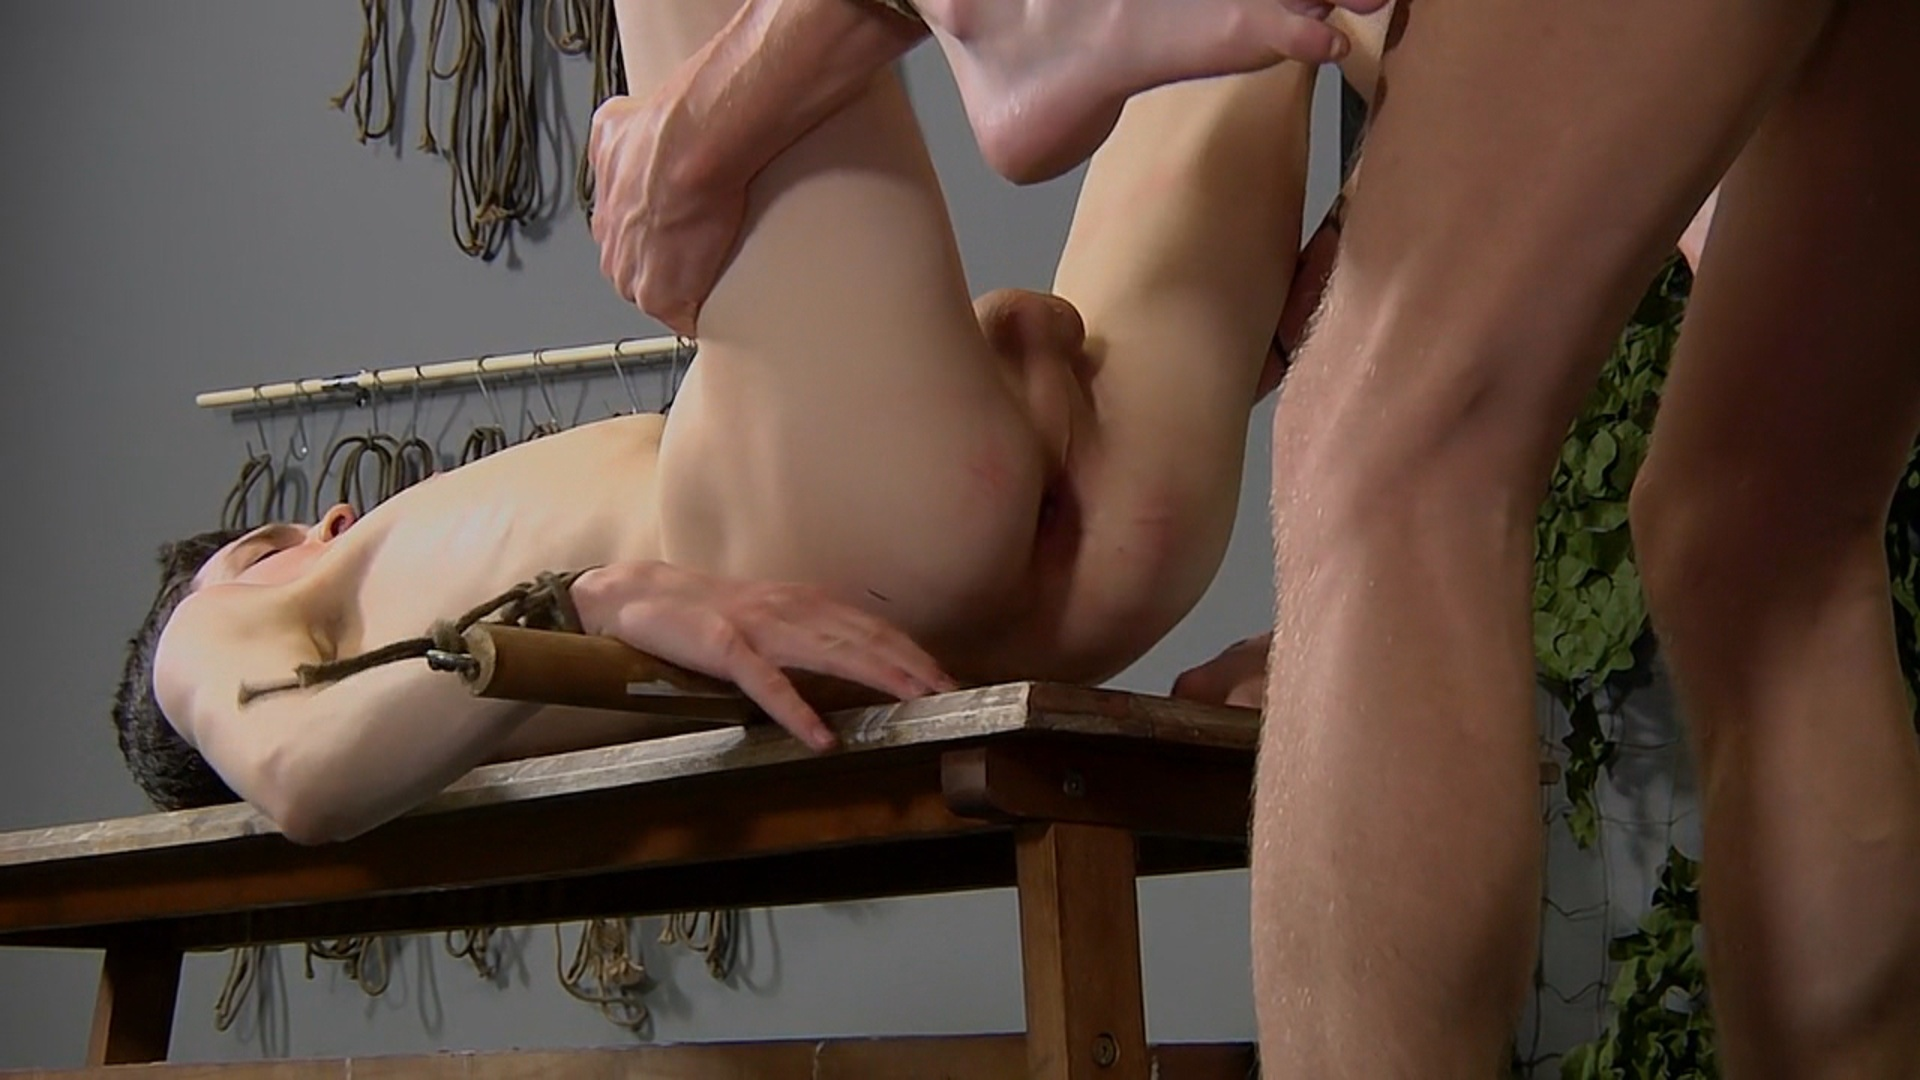 Boynapped 368: Anal Abuse For Twink Aaron Xvideo gay